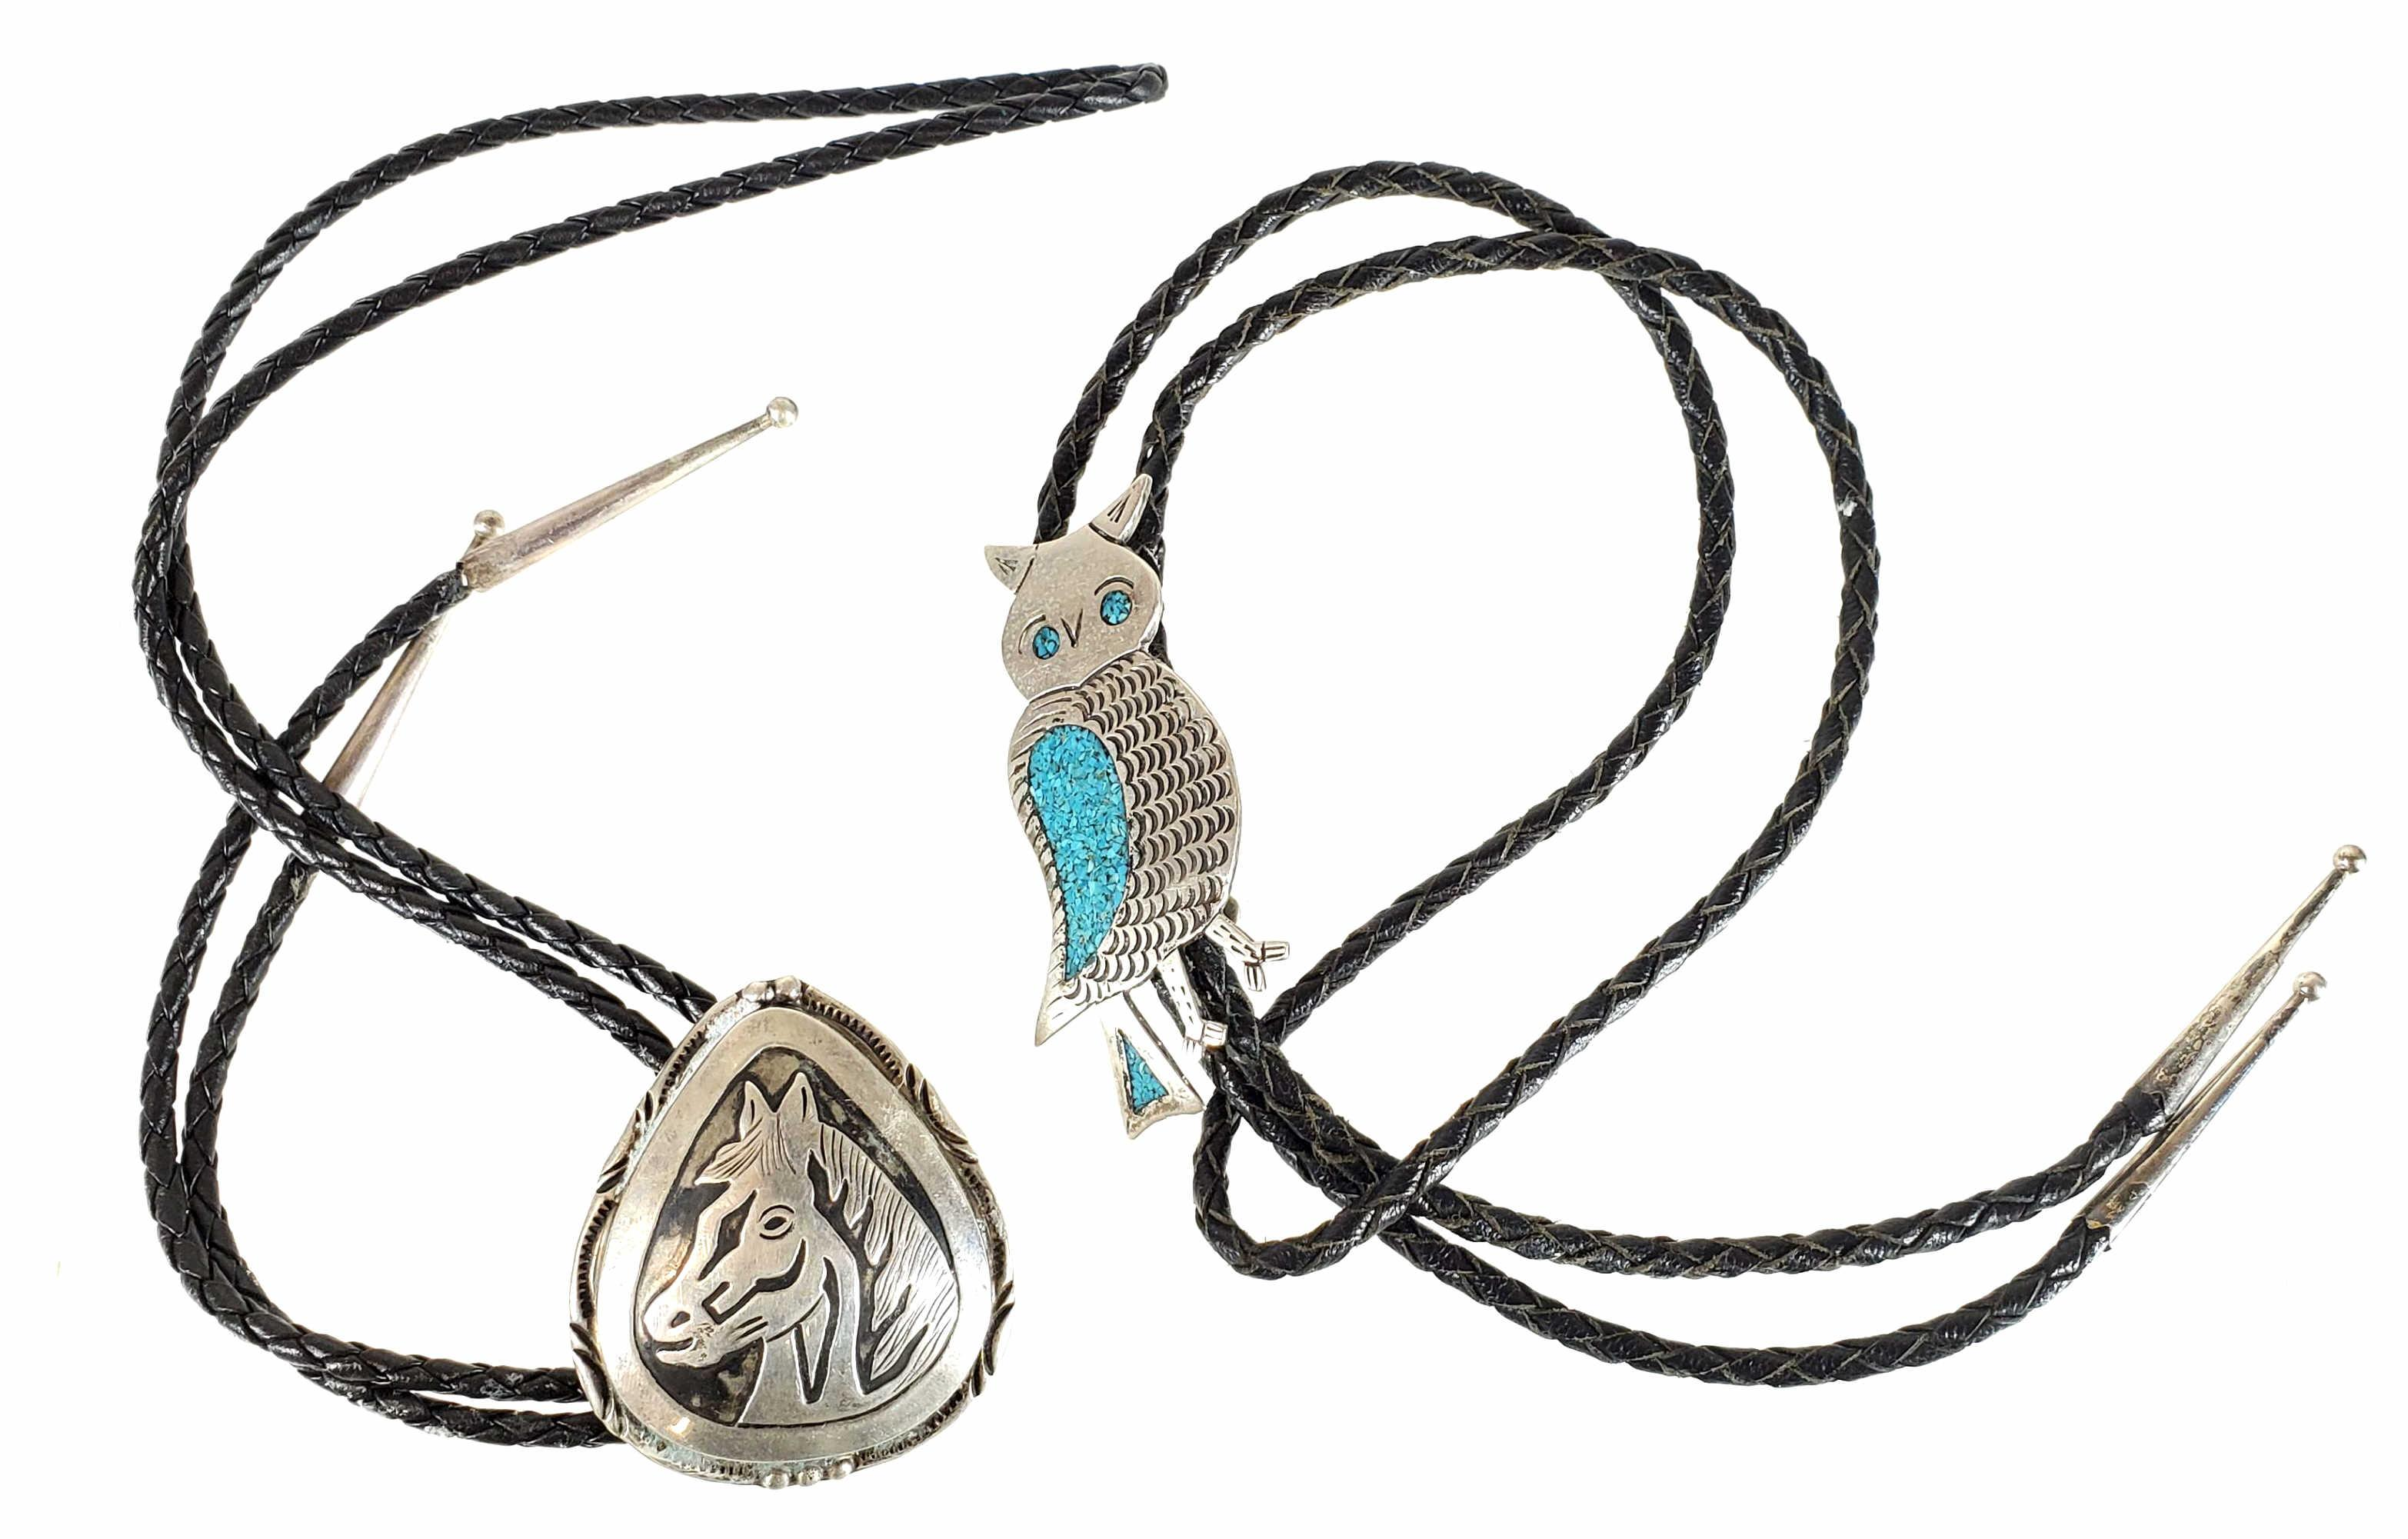 (2) Sterling Silver Horse & Owl Bolo Ties